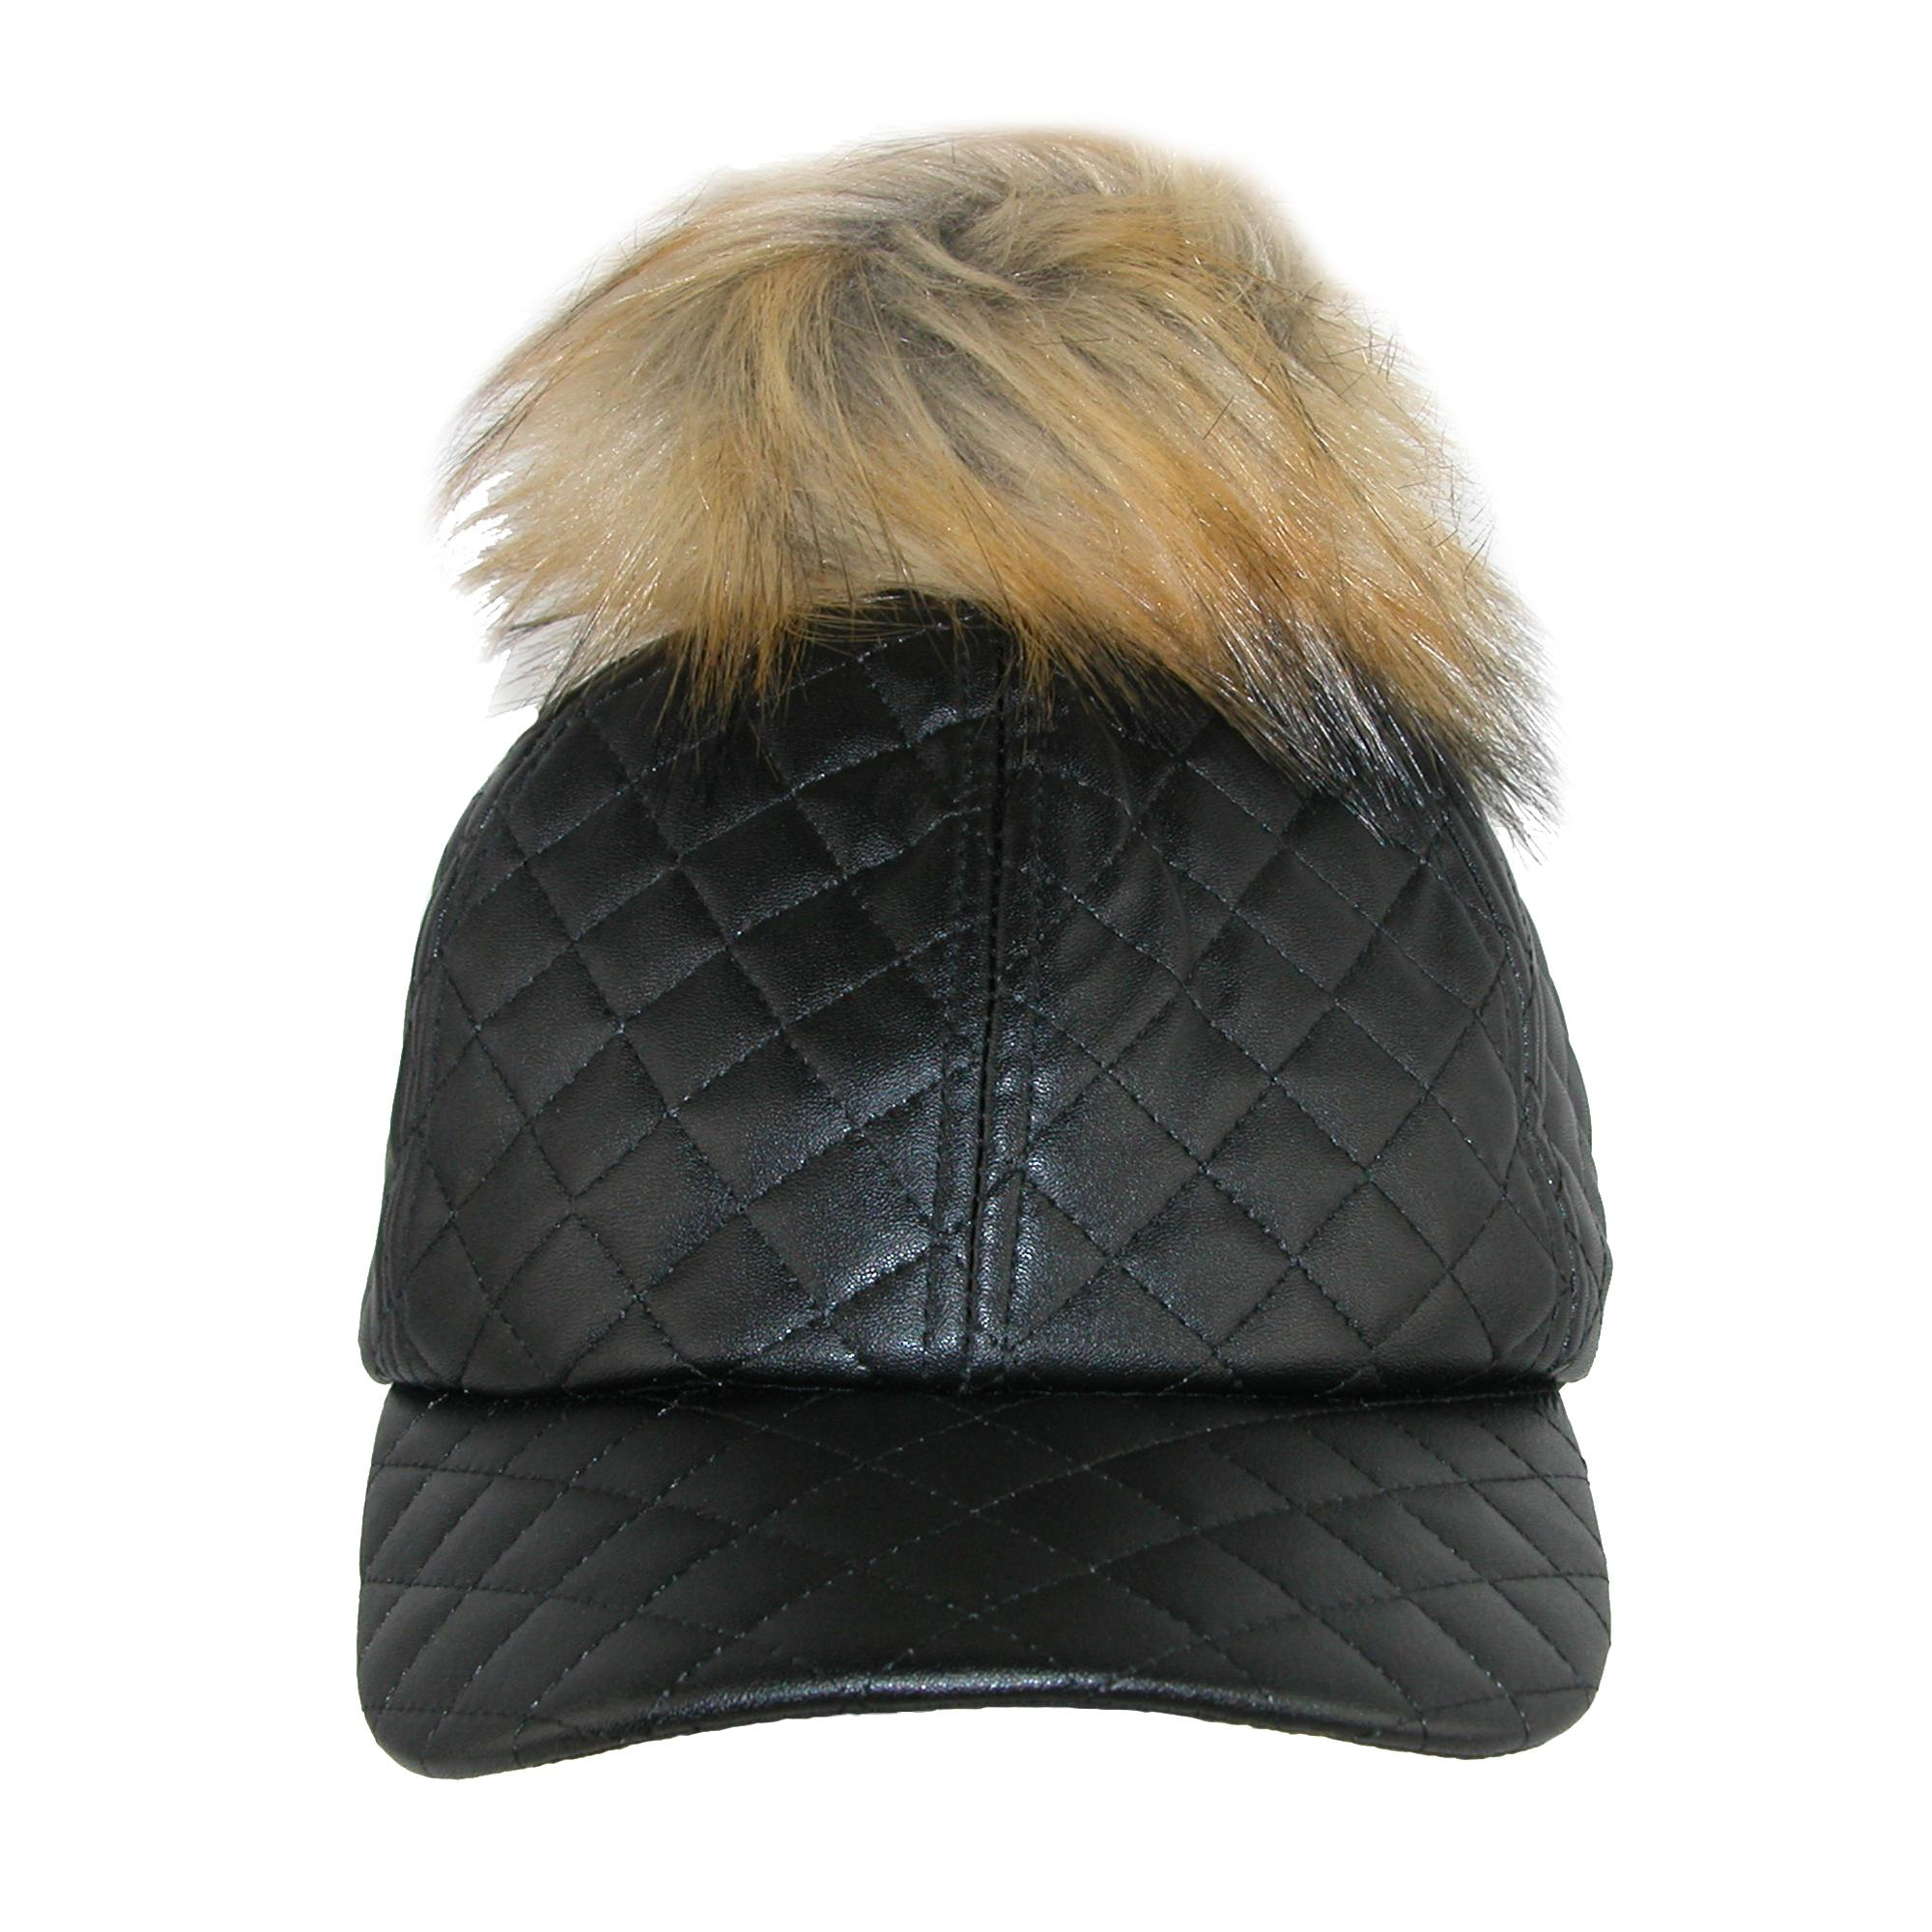 Pia Rossini Women's Quilted PU Cap with Faux Fur Detachable Pom Pom - image 4 of 4